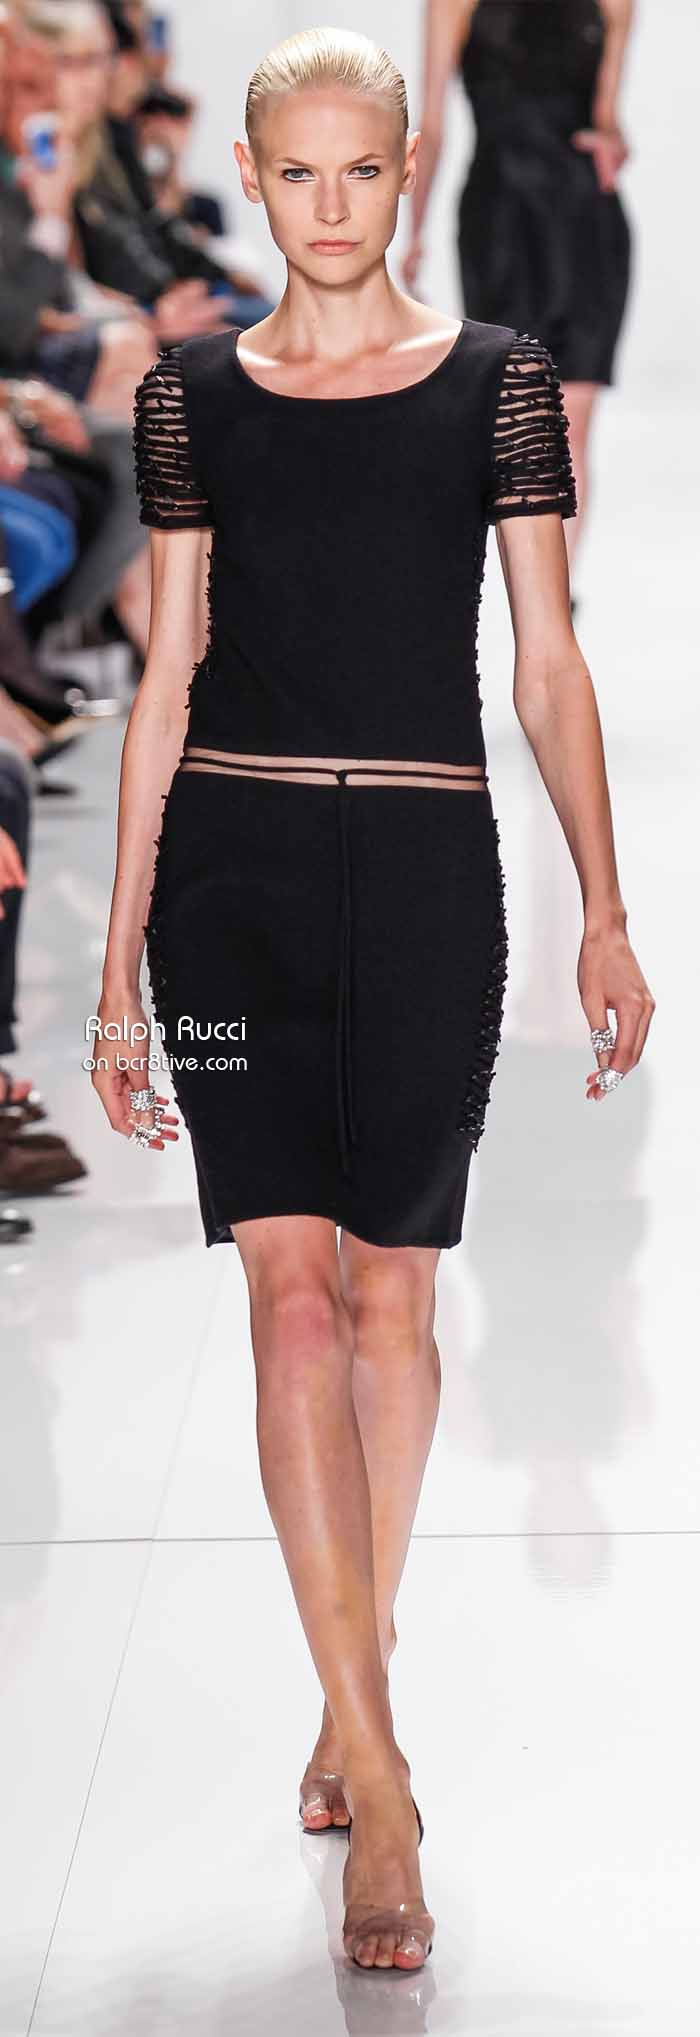 Ralph Rucci Spring 2014 #NYFW - Little Black Dress with Macrame